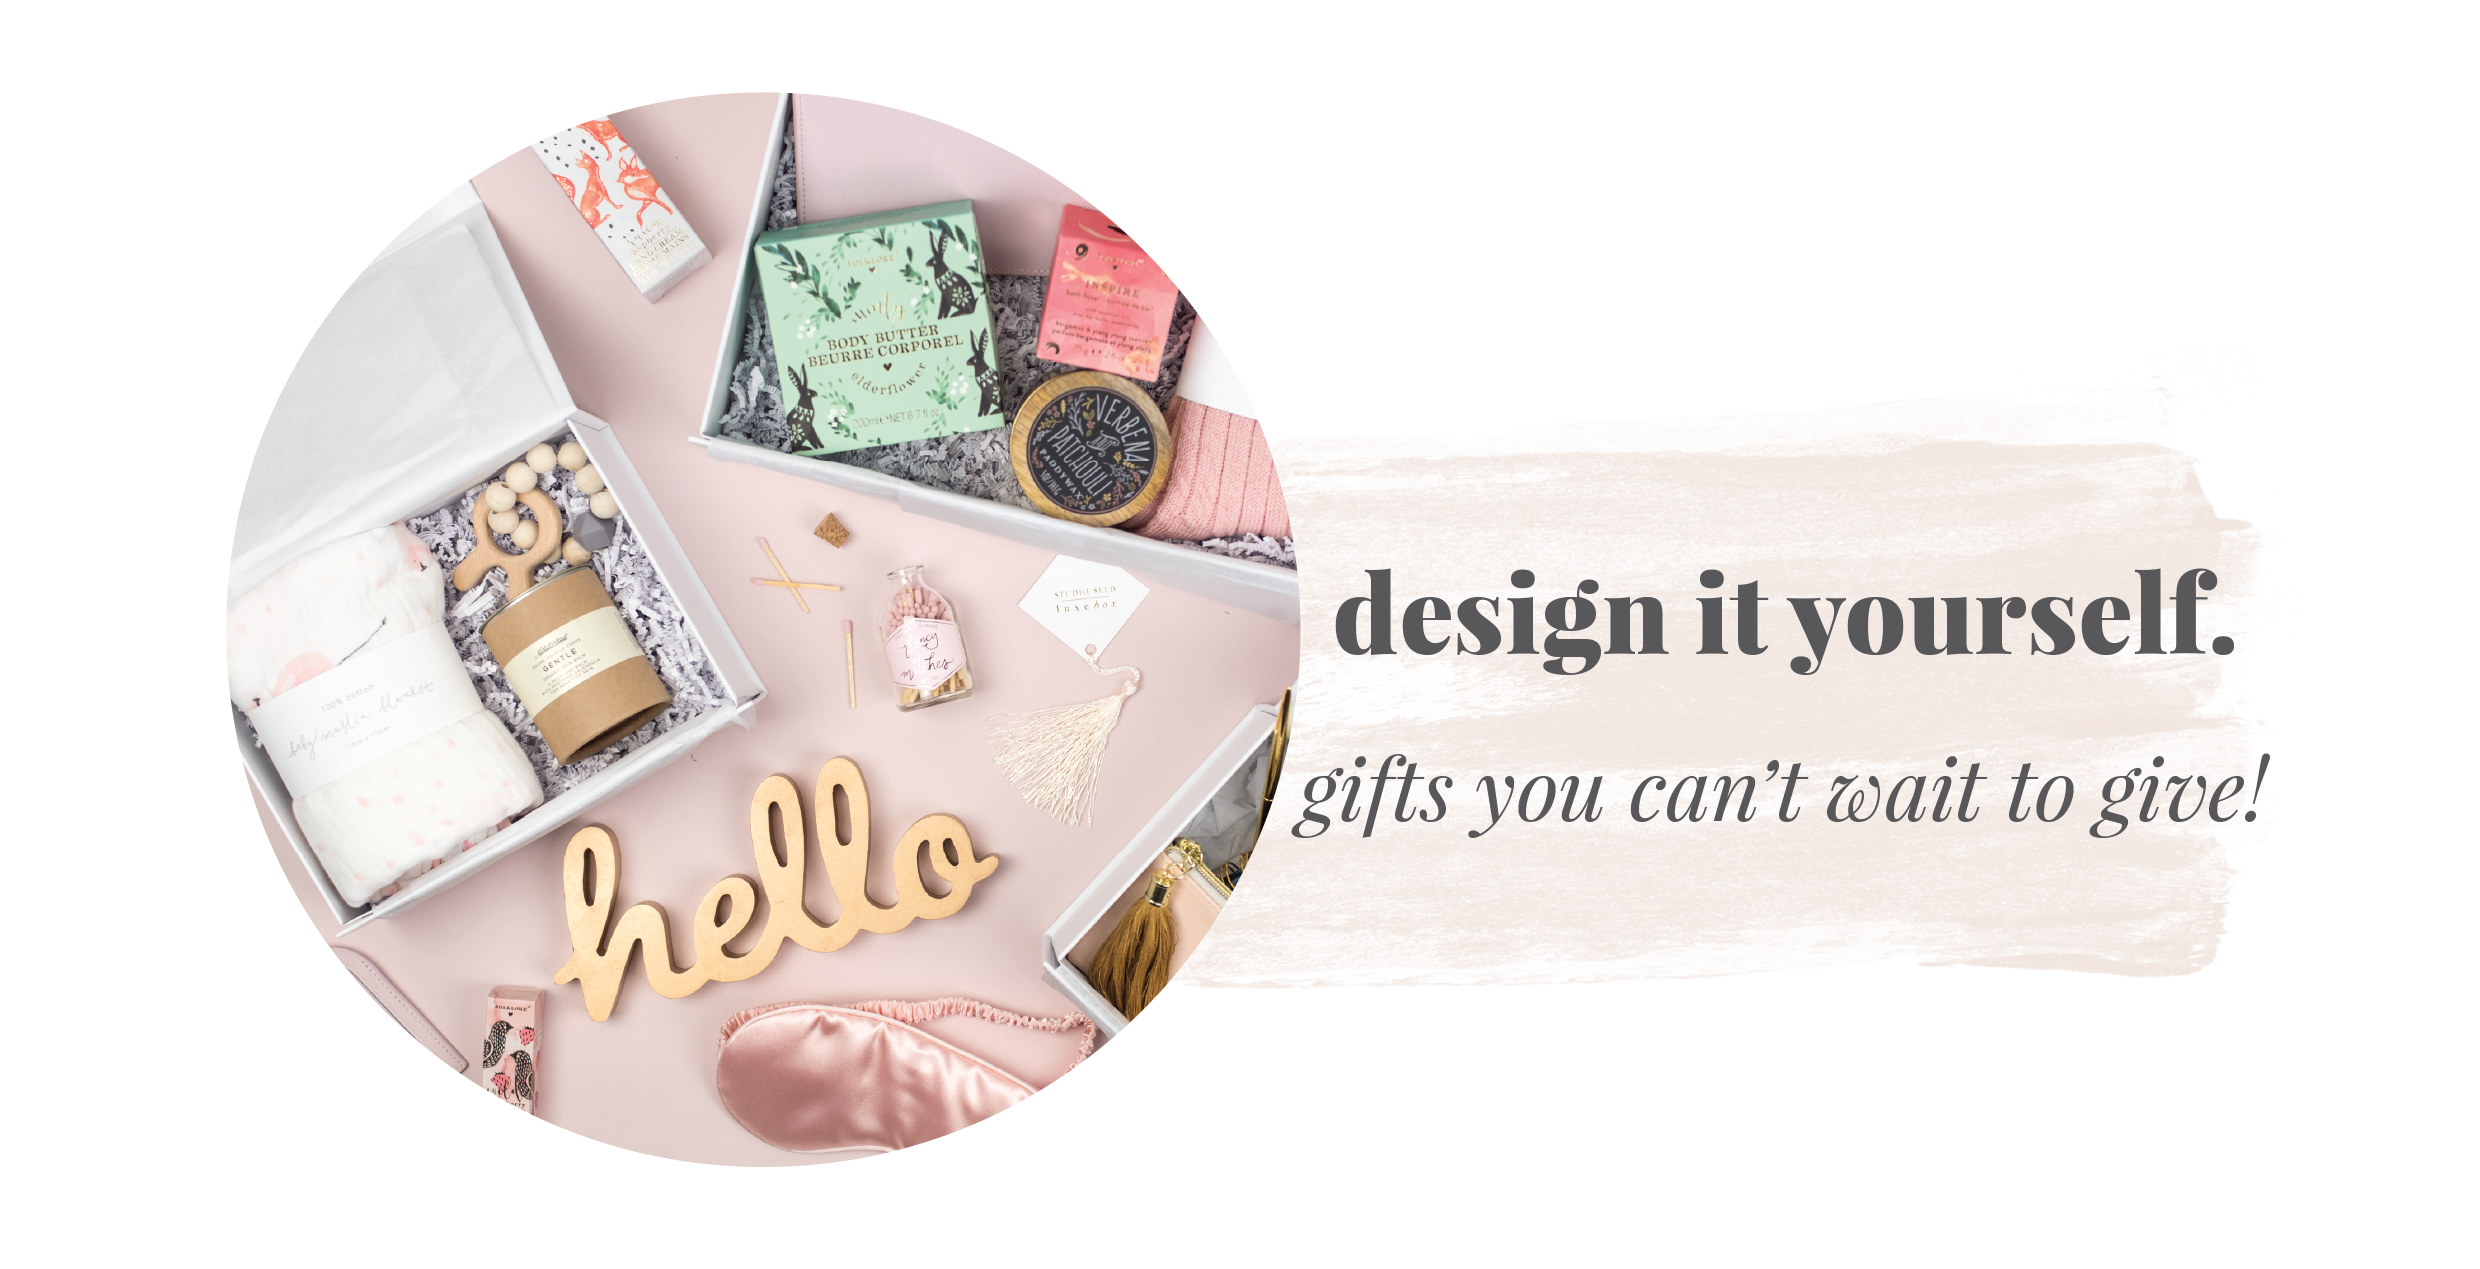 design-your-own-gift.png